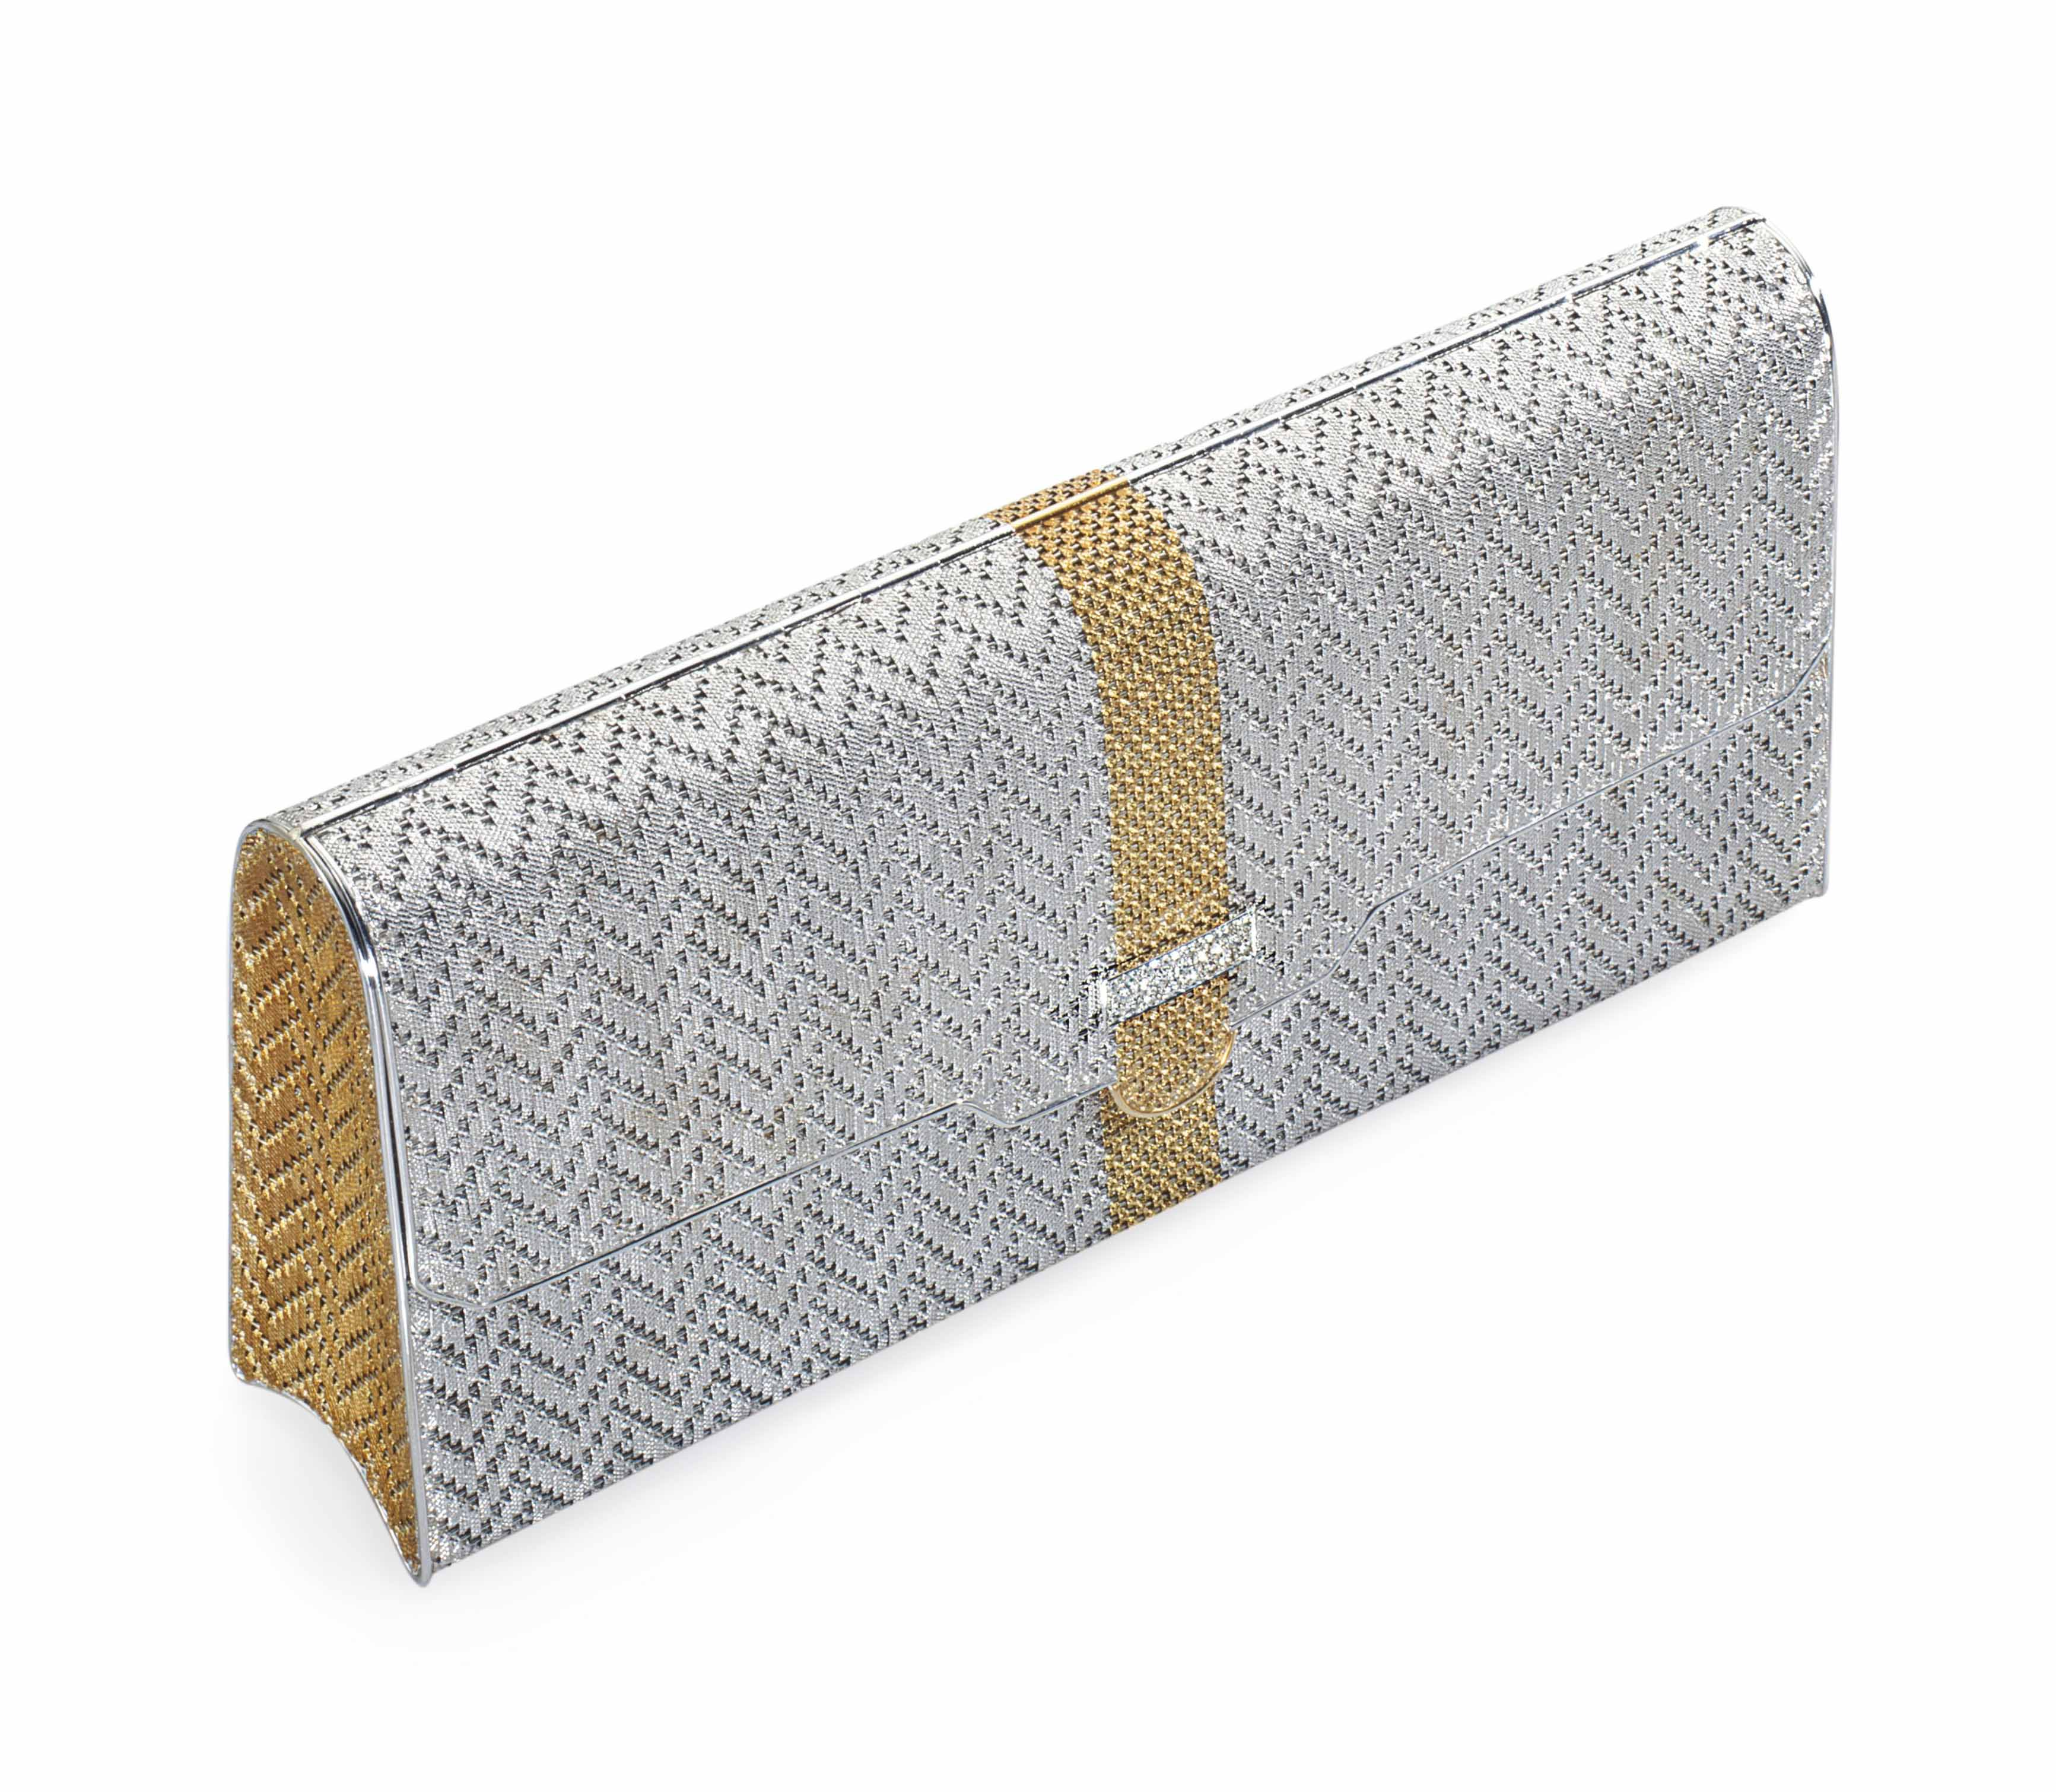 A DIAMOND AND GOLD EVENING BAG, BY GUCCI